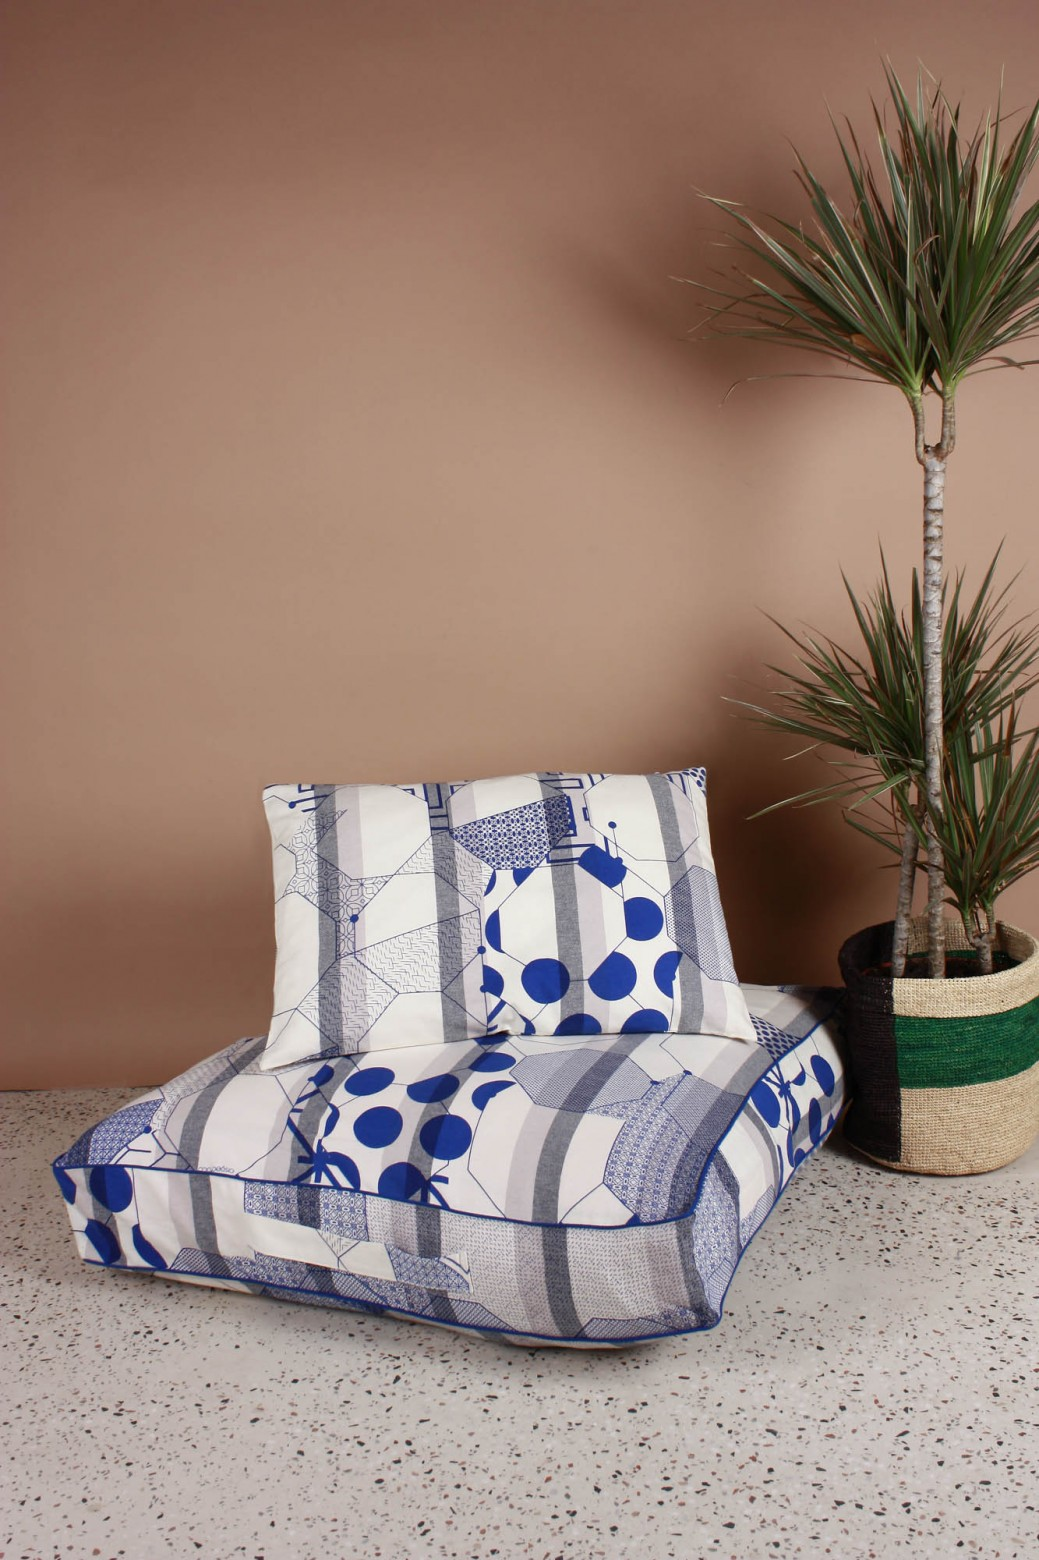 Miroir Blue Floor Cushion Cover